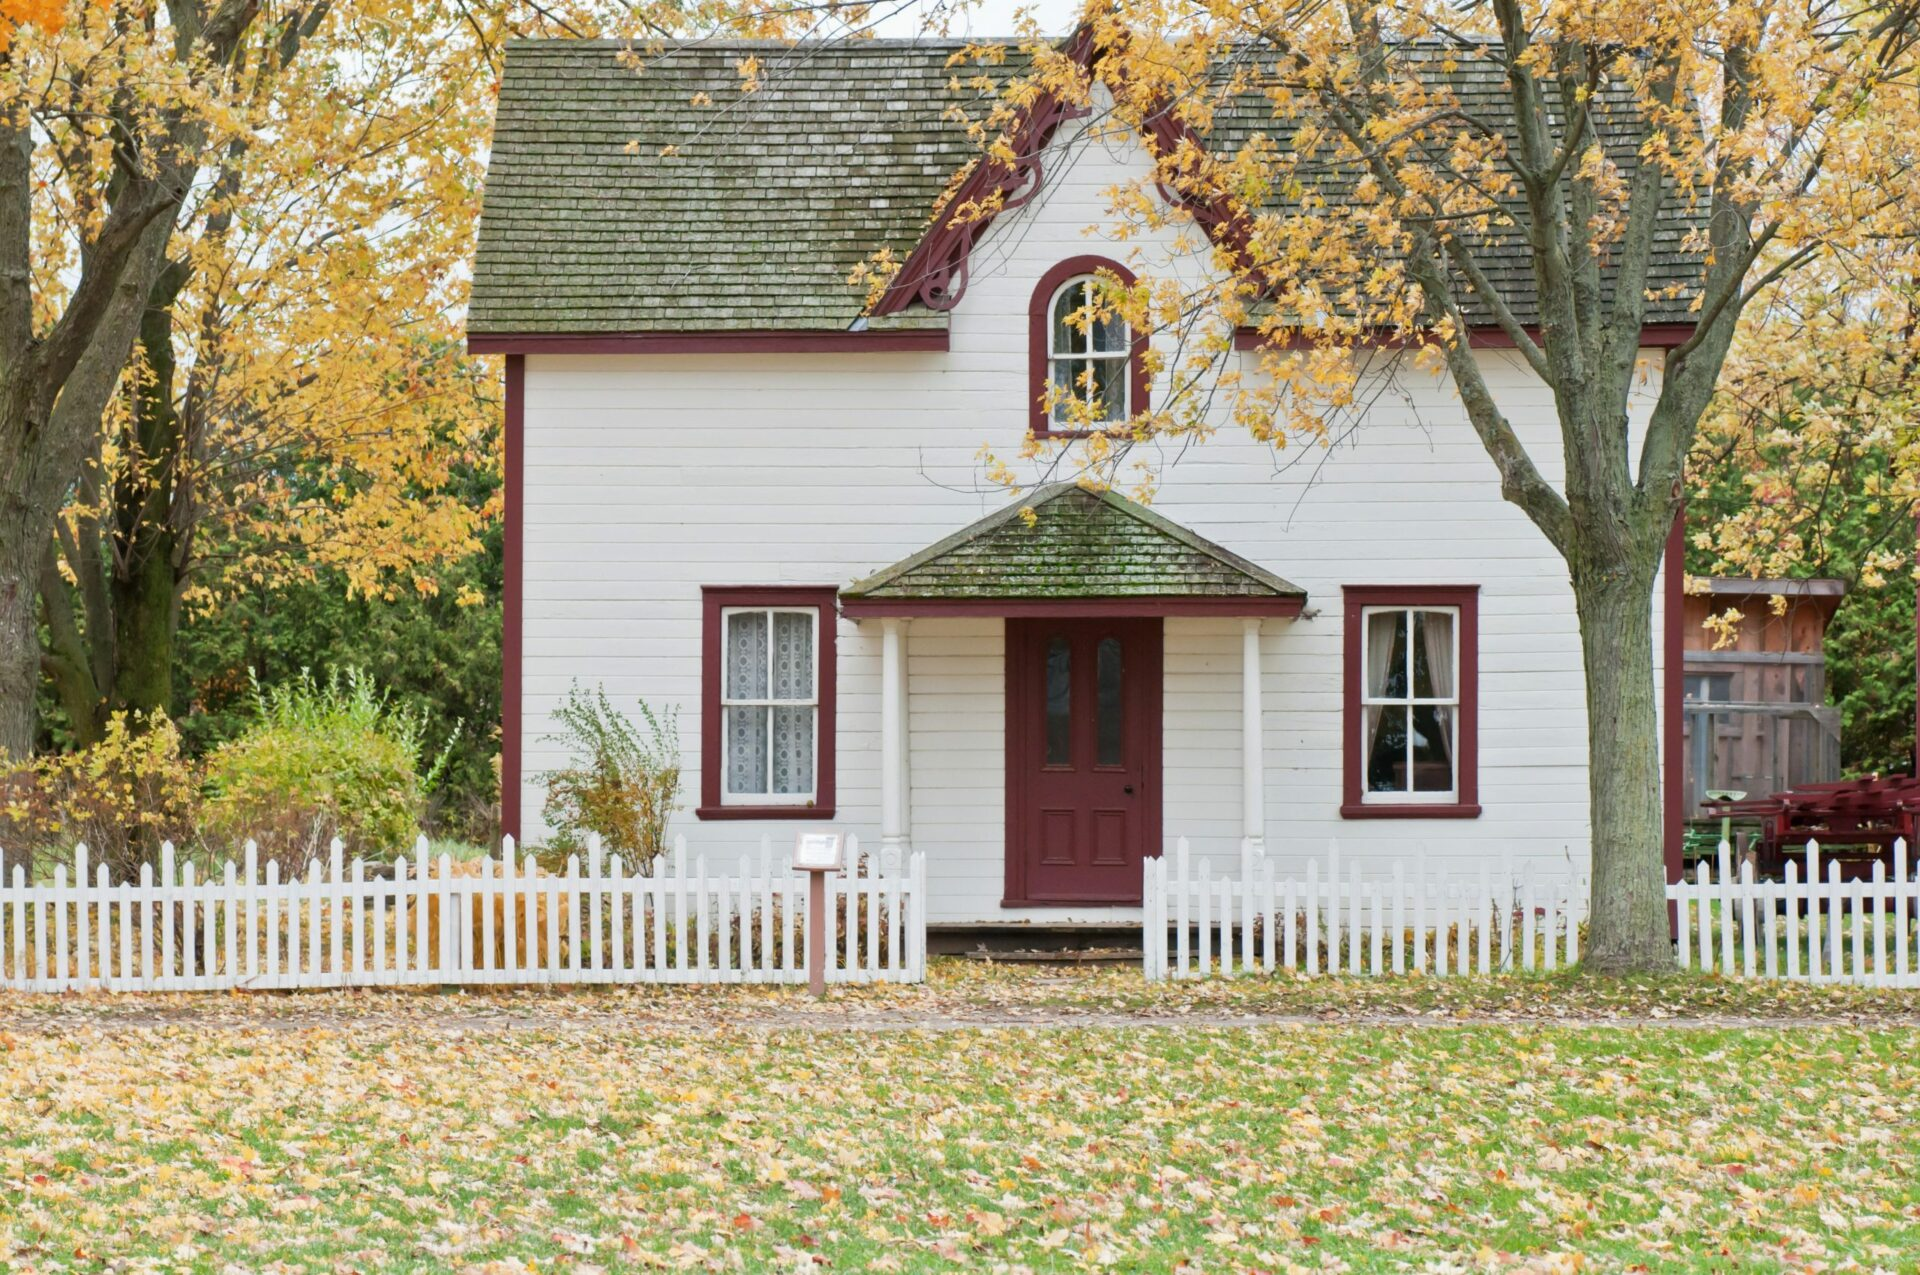 Image of a Cottage in the Fall